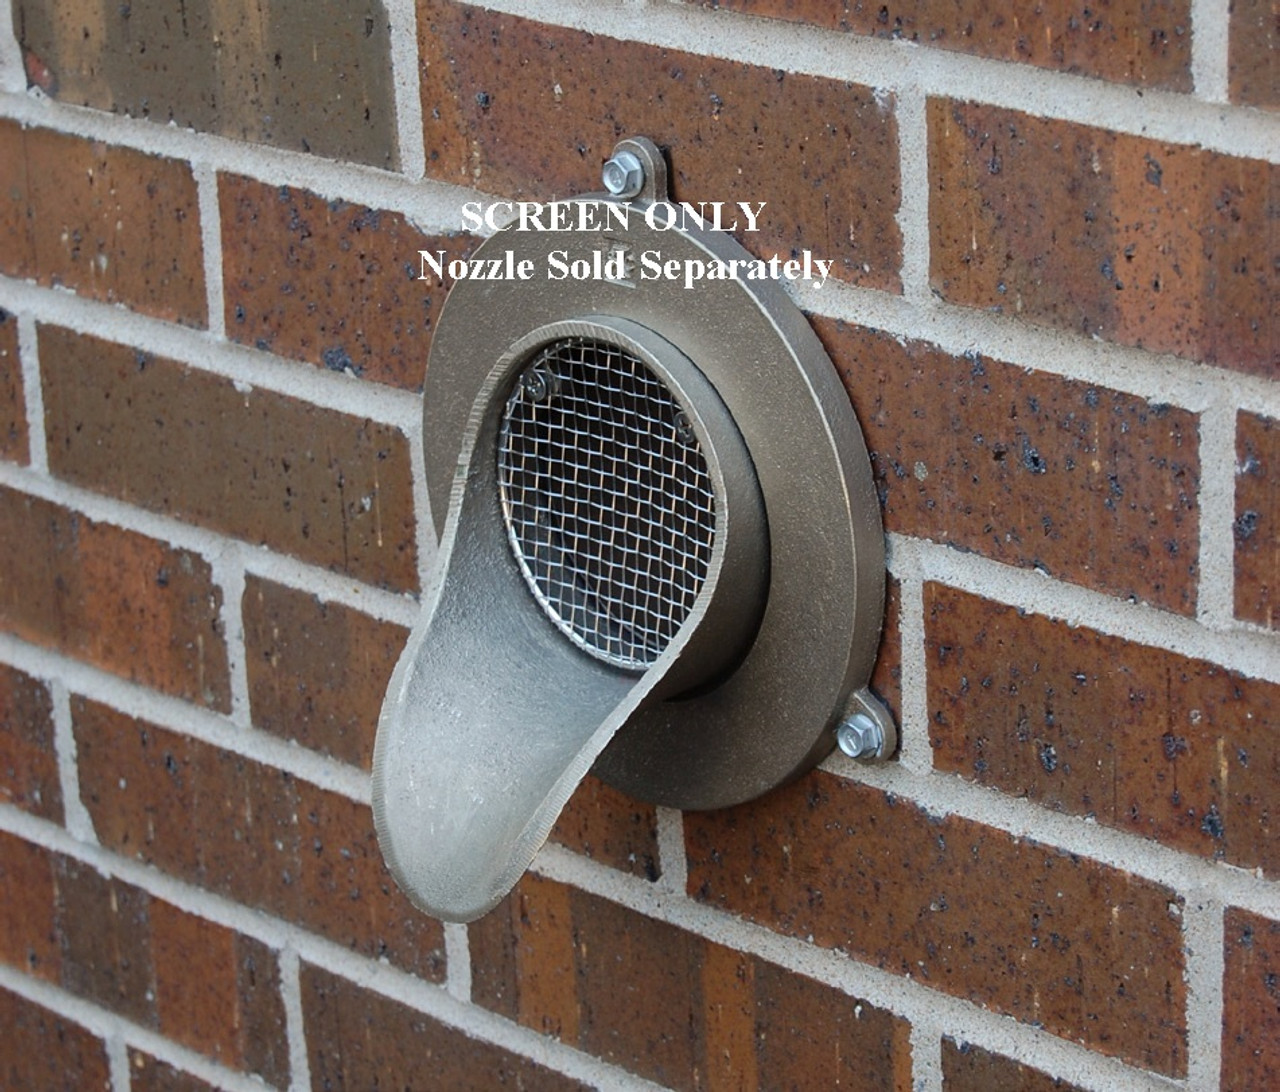 4 Quot Bird Screen For Nickel Bronze Downspout Nozzle The